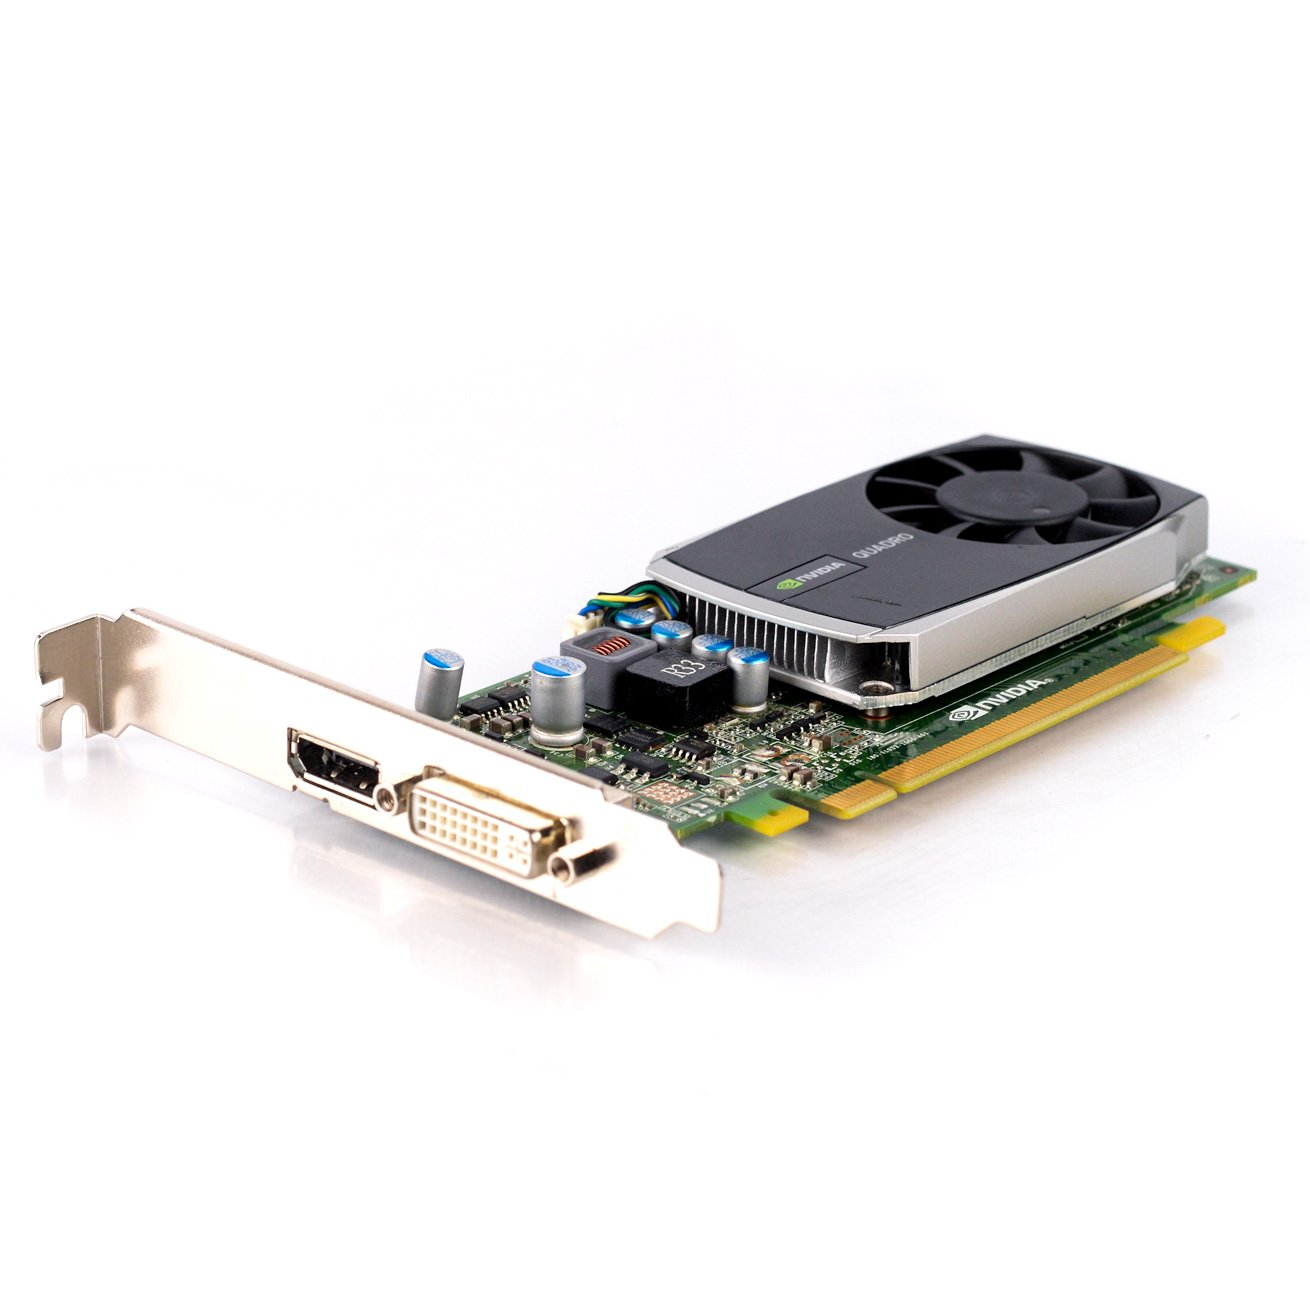 43c5bcd920 Amazon.com  Genuine NVIDIA Quadro 600 PCI-E VIDEO CARD Desktop 1GB  NVA-P1033-000  Computers   Accessories